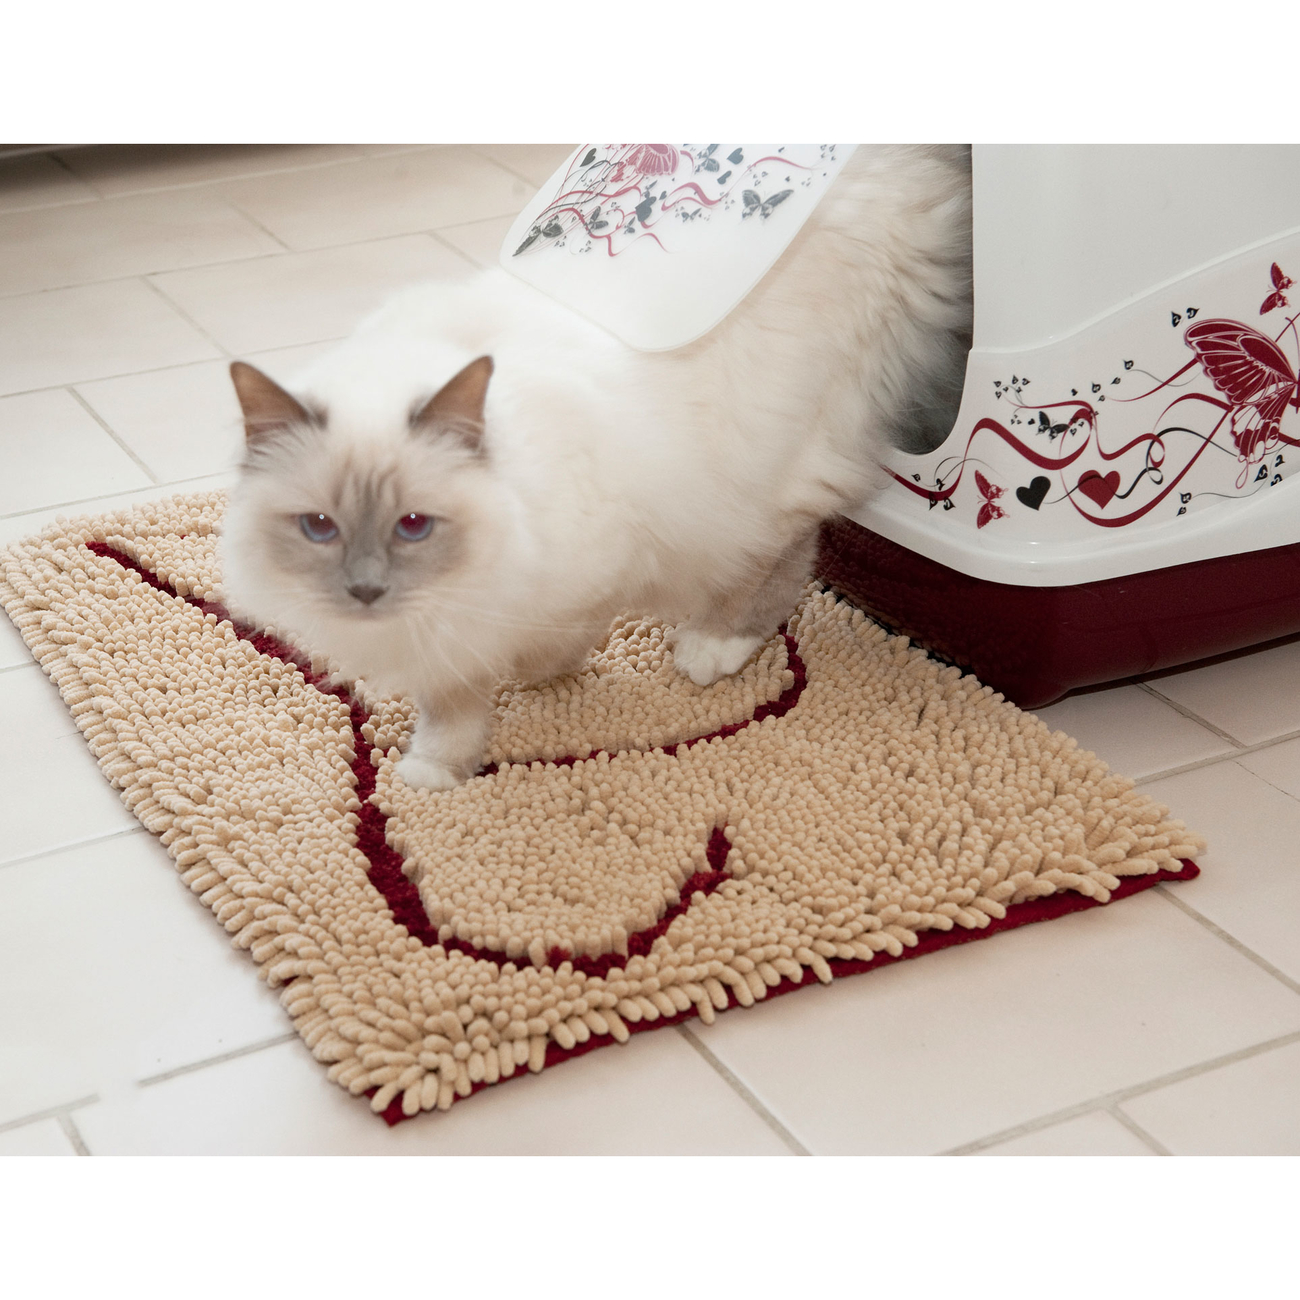 Dog Gone Smart Cat Litter Mat Katzenmatte, Bild 6